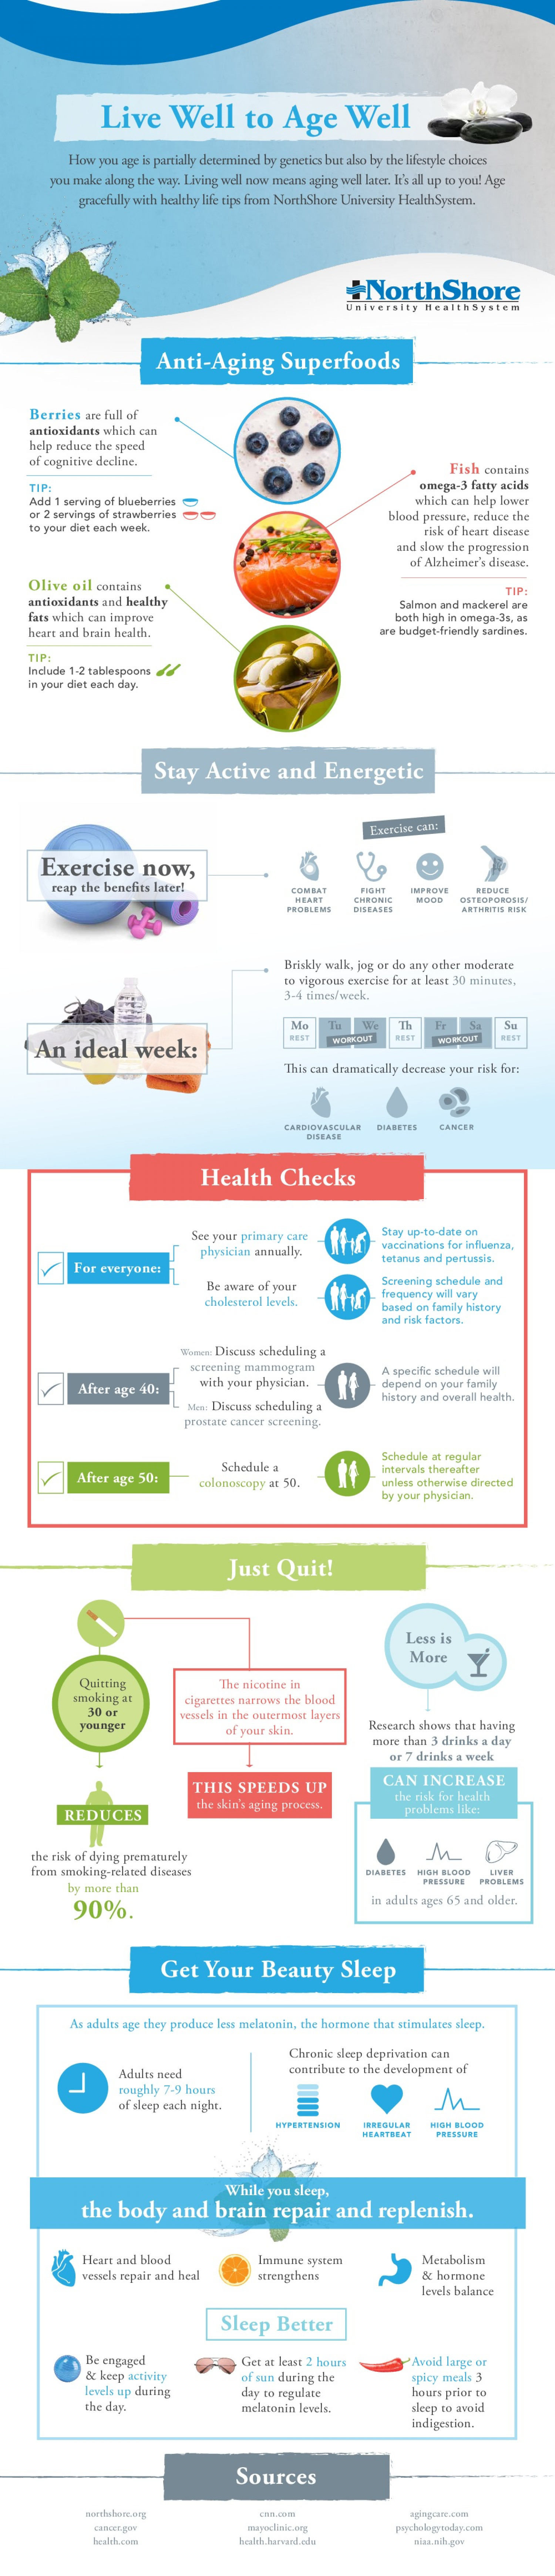 Live Well to Age Well: Healthy Aging Tips Infographic